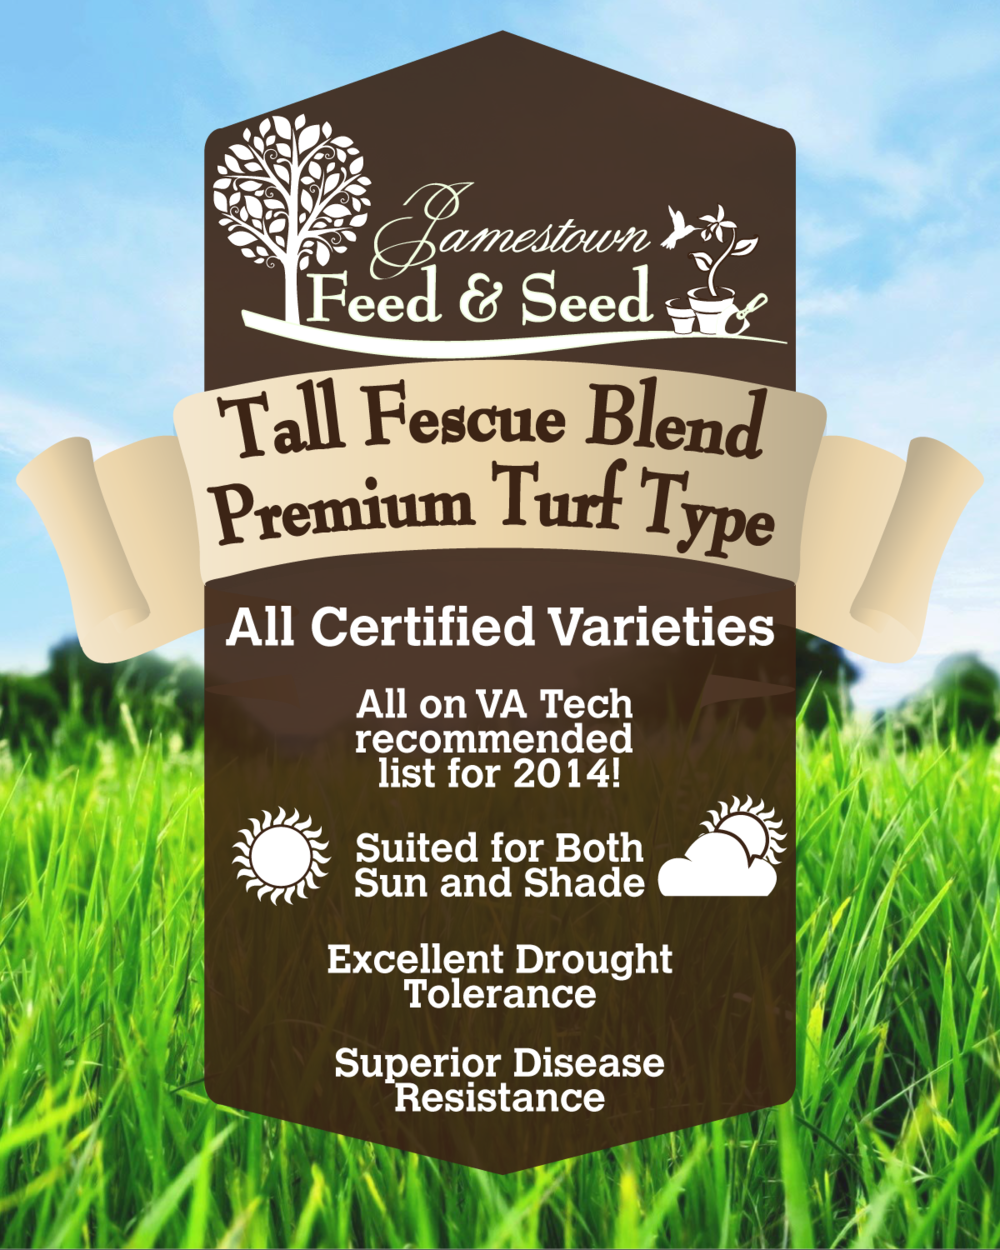 jfs grass seed label